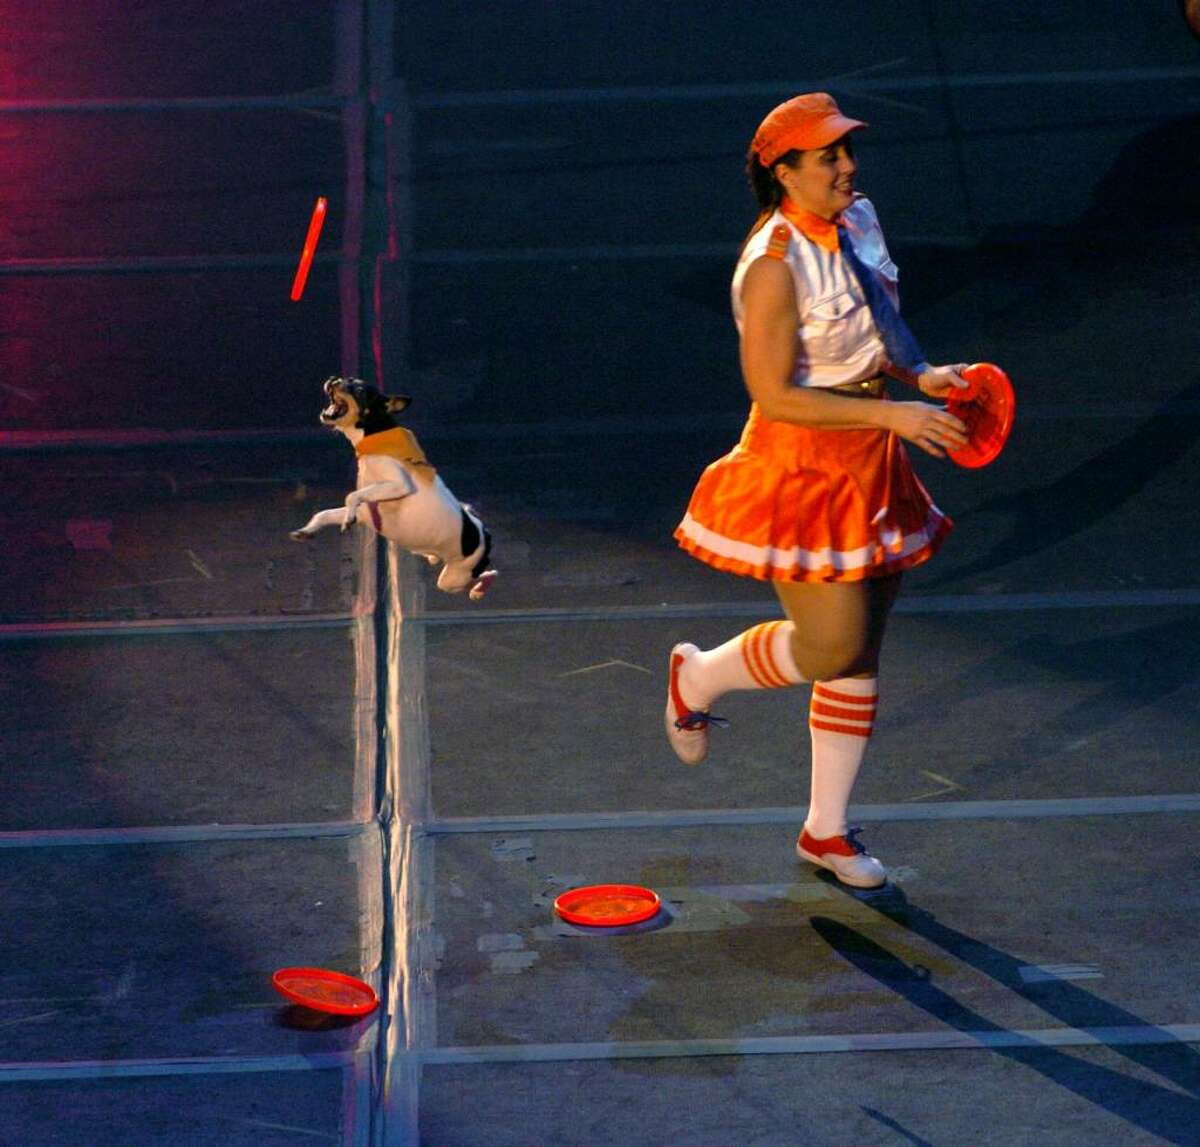 Gail Mirabella and the High Flying Dynamic Dogs perform at the Ringling Brothers Barnum and Bailey